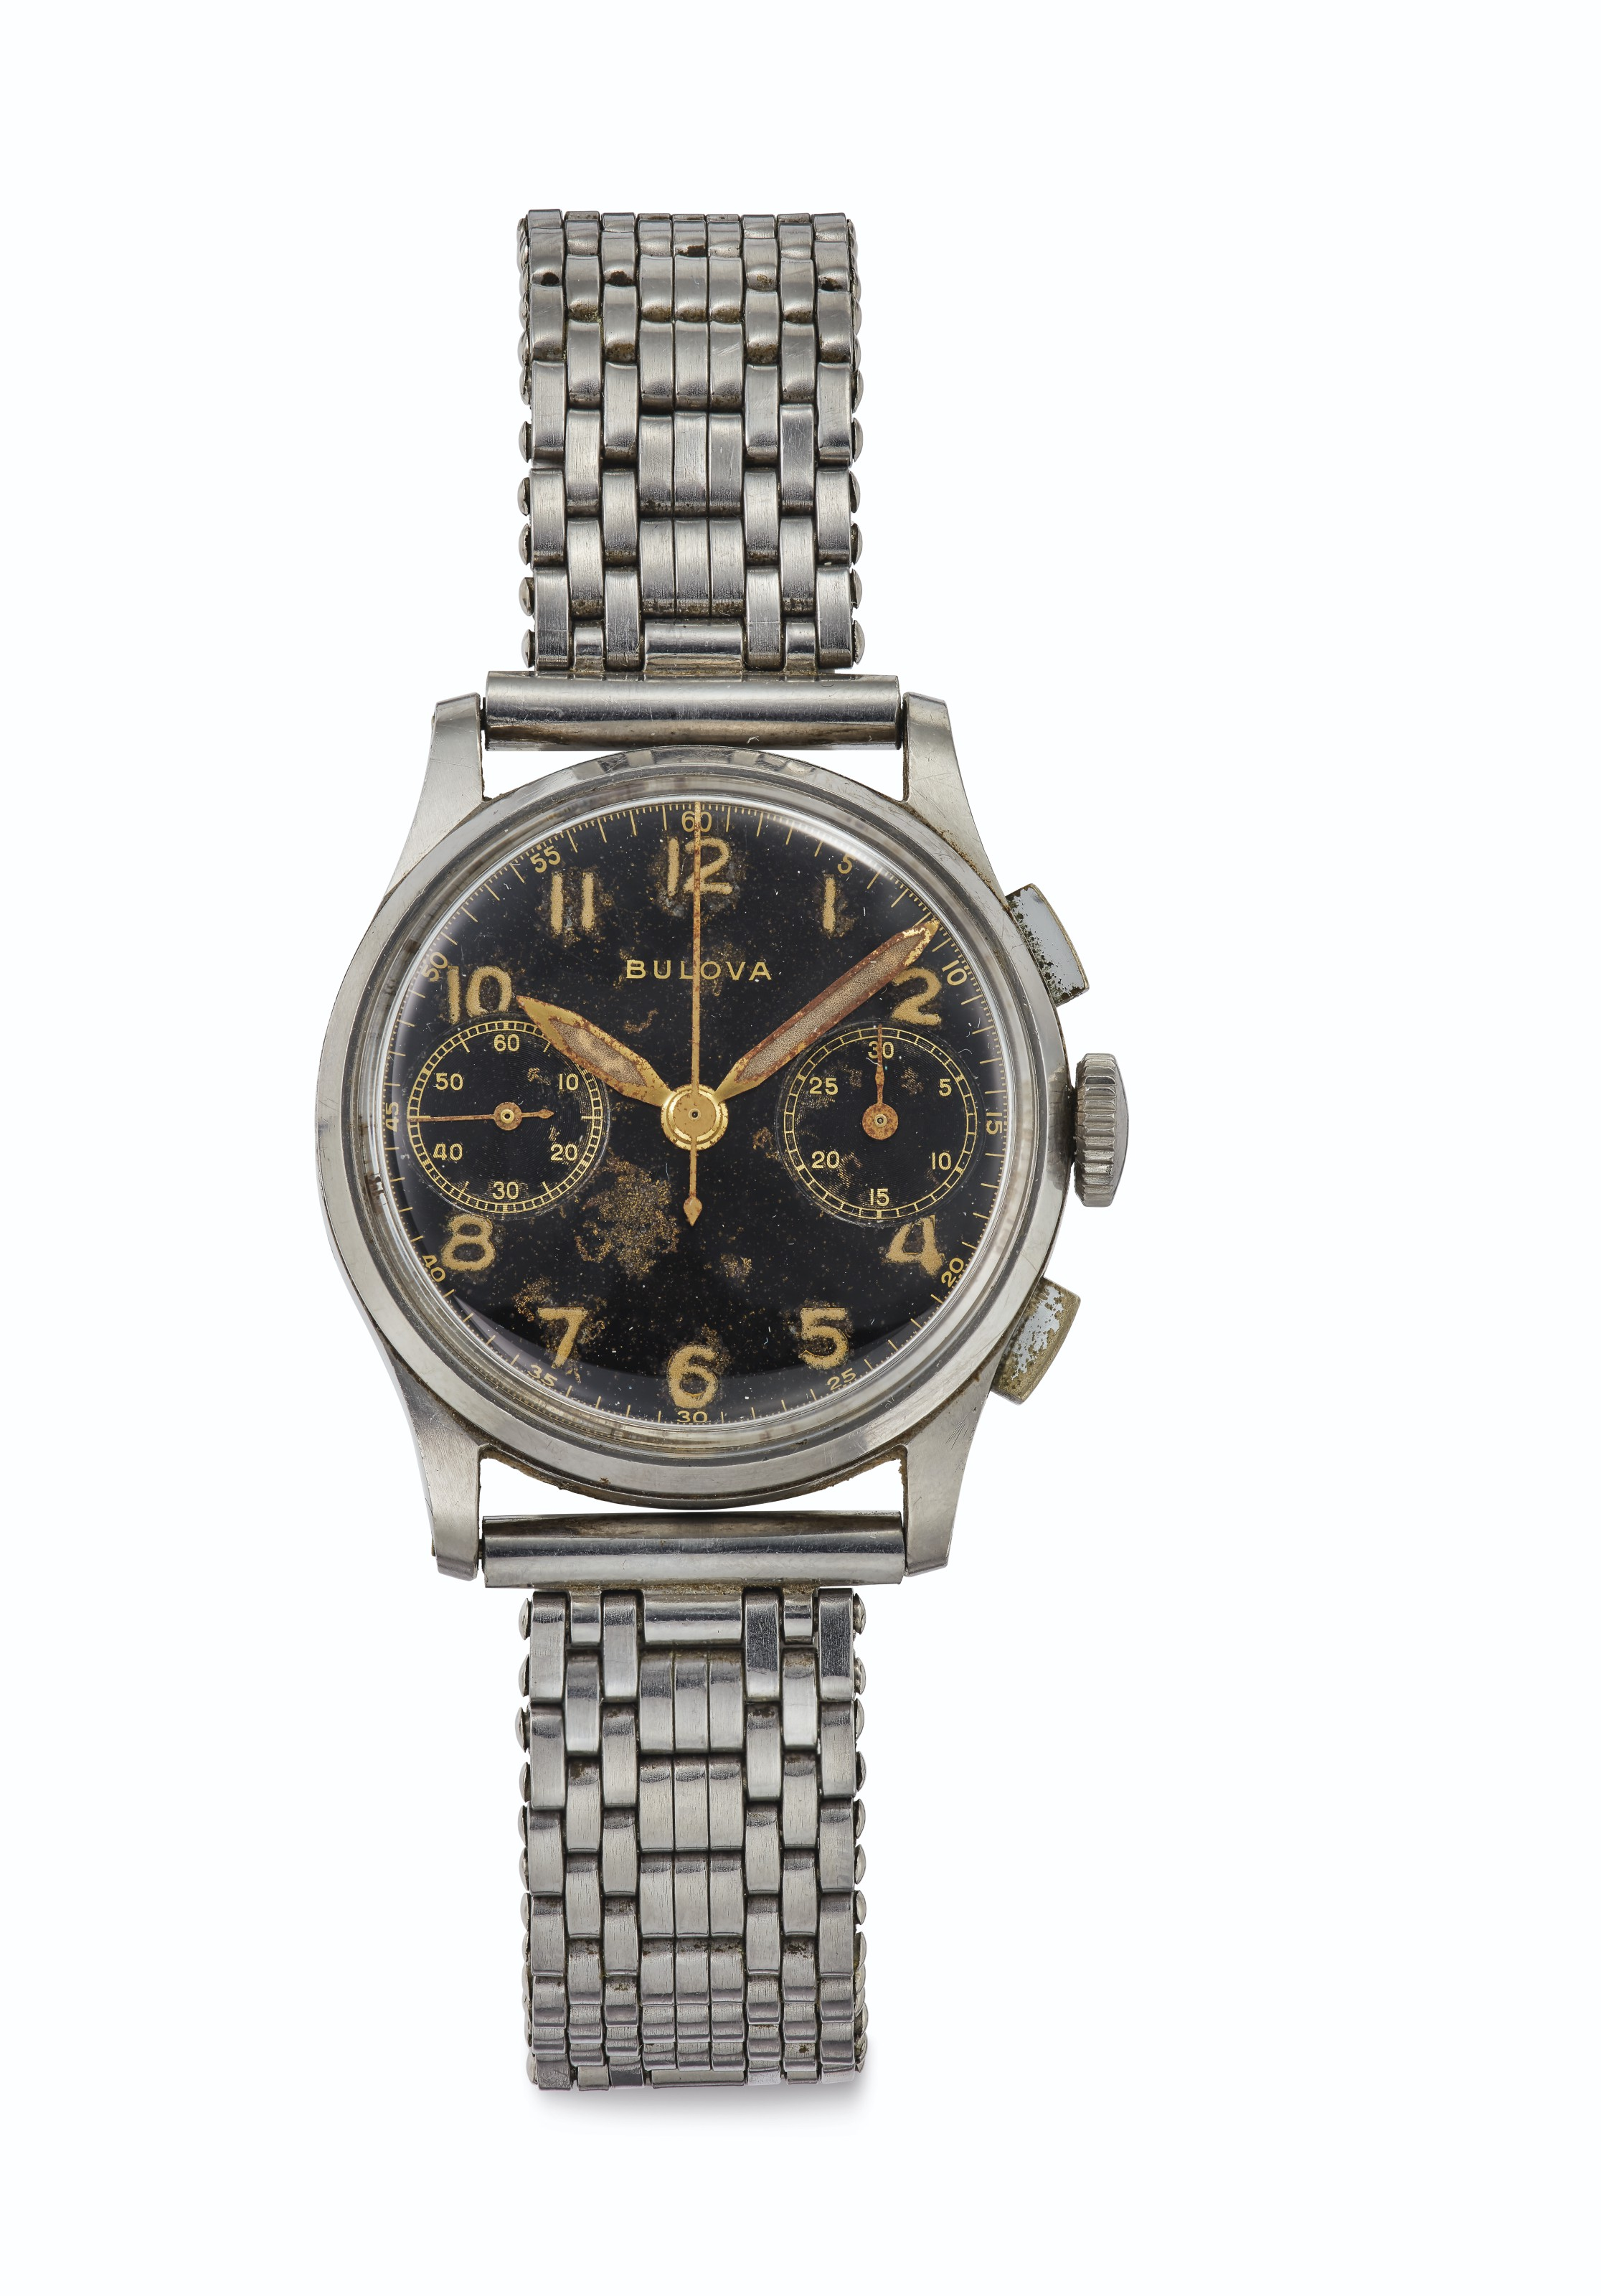 Bulova. A Fine Stainless Steel Chronograph Wristwatch with Black Dial, Formerly Belonging to American Major League Baseball Legend Joe DiMaggio